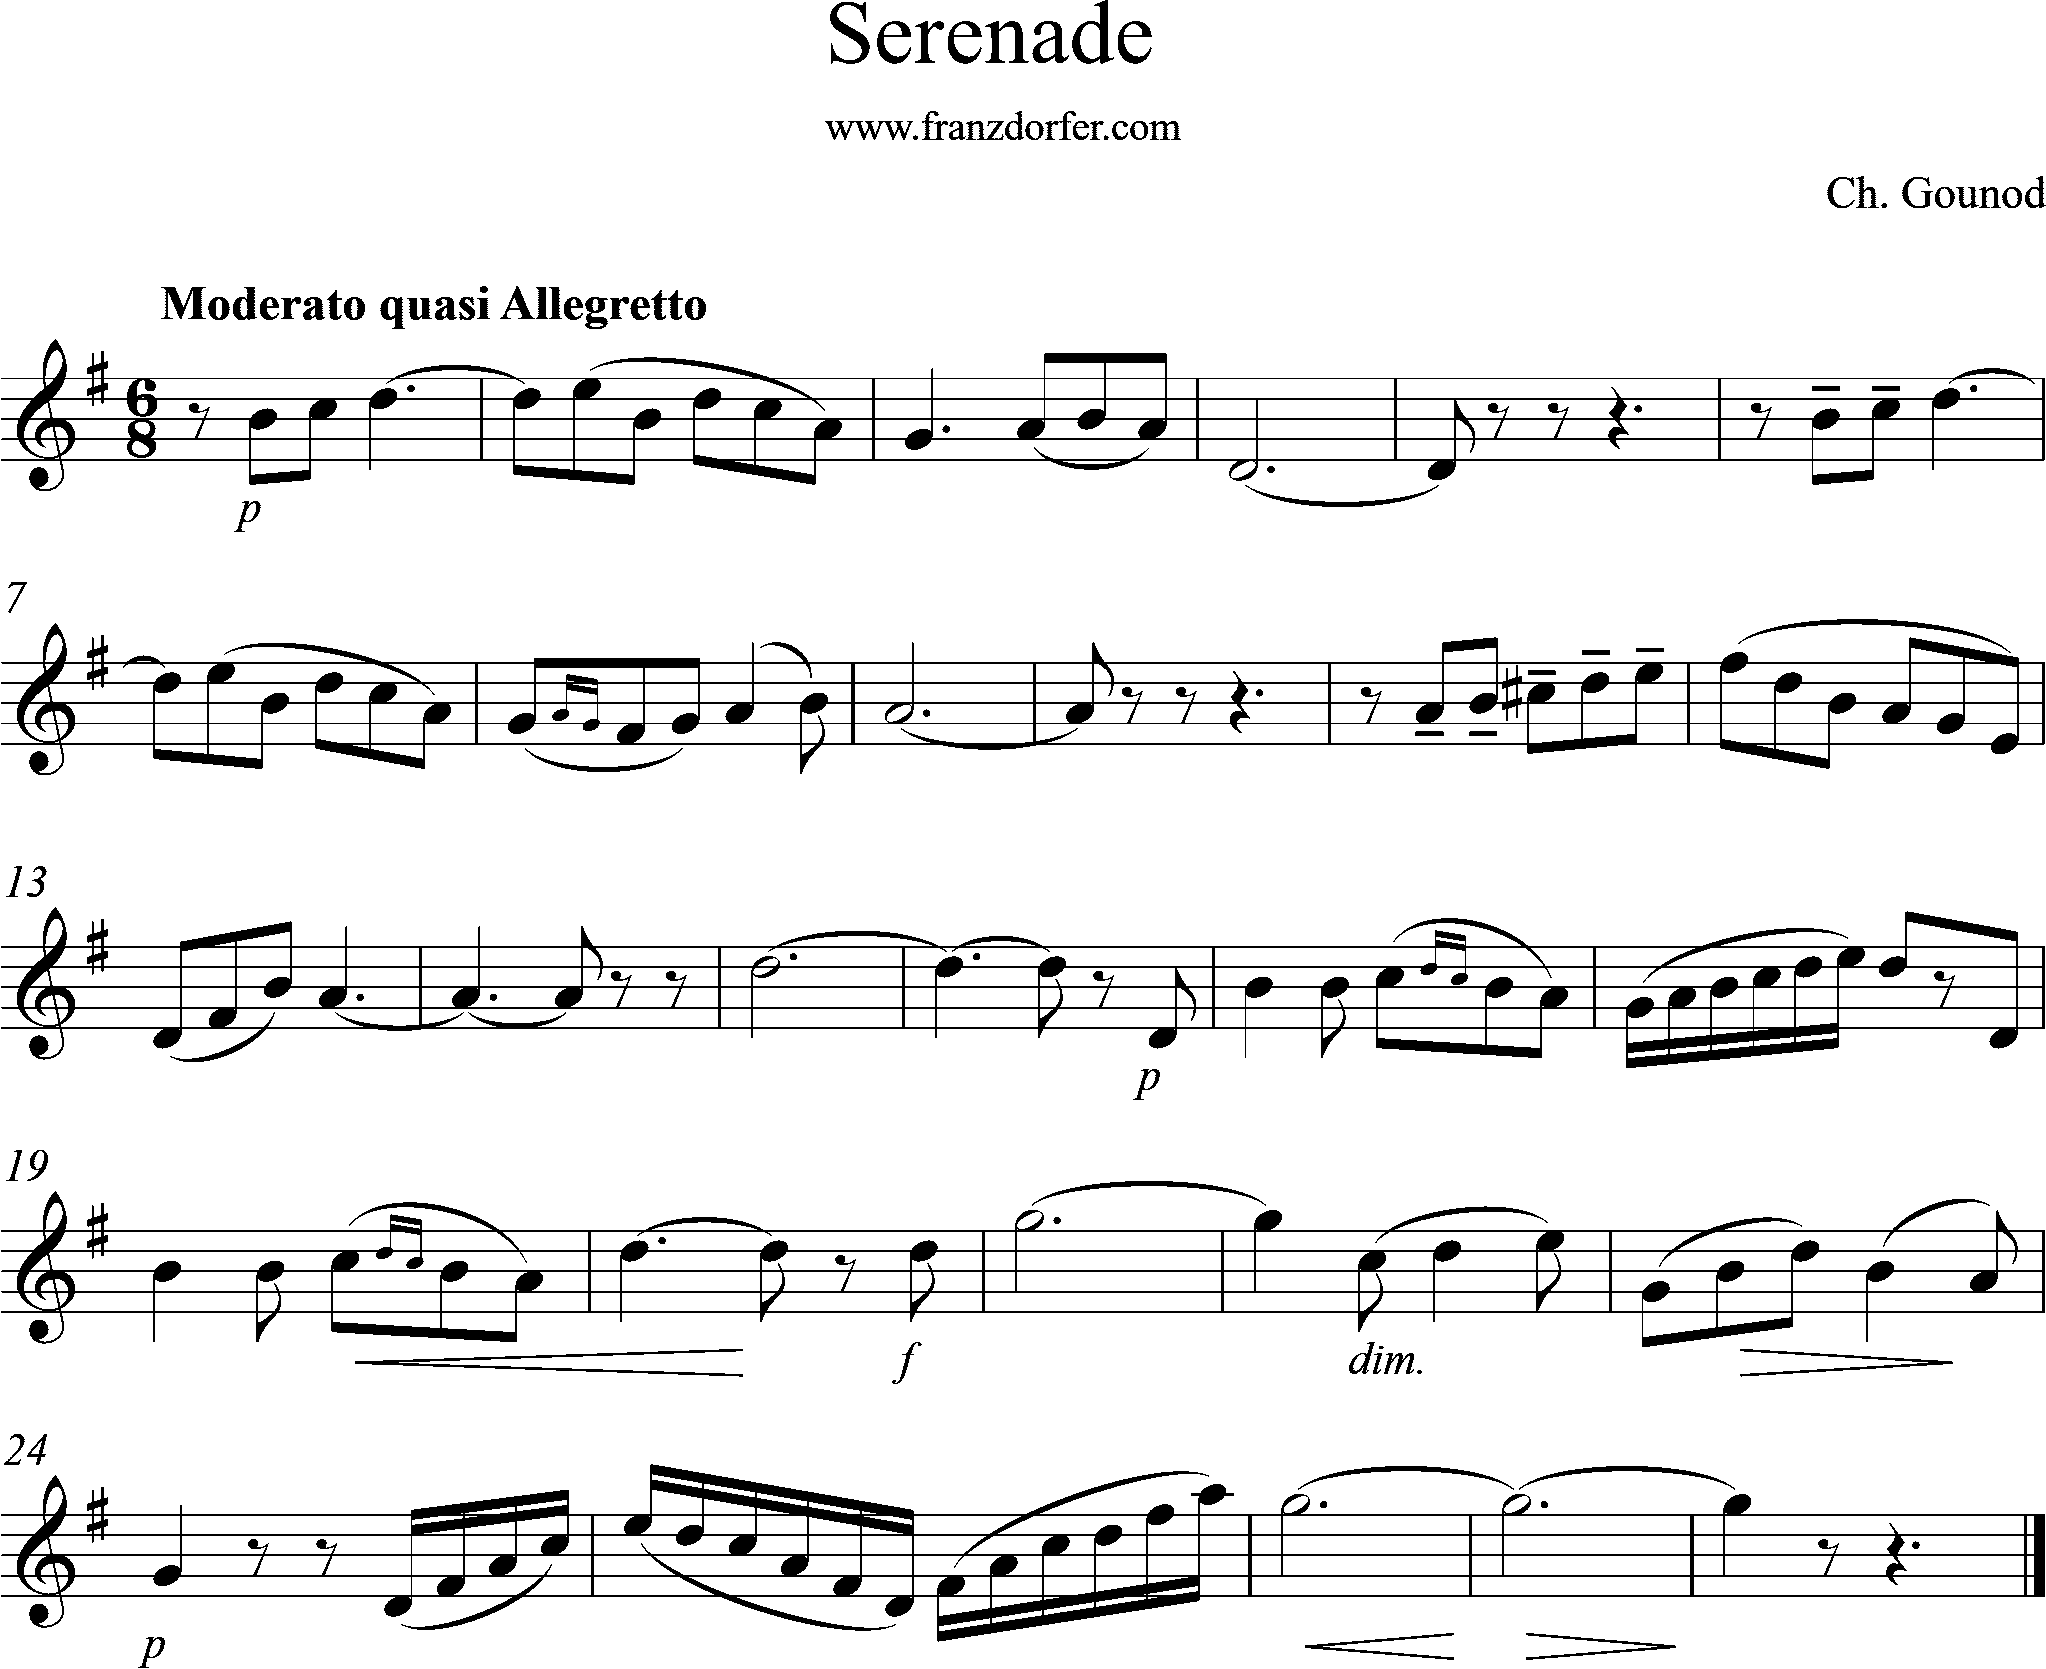 sheetmusic Serenade. Gounod, G-Major